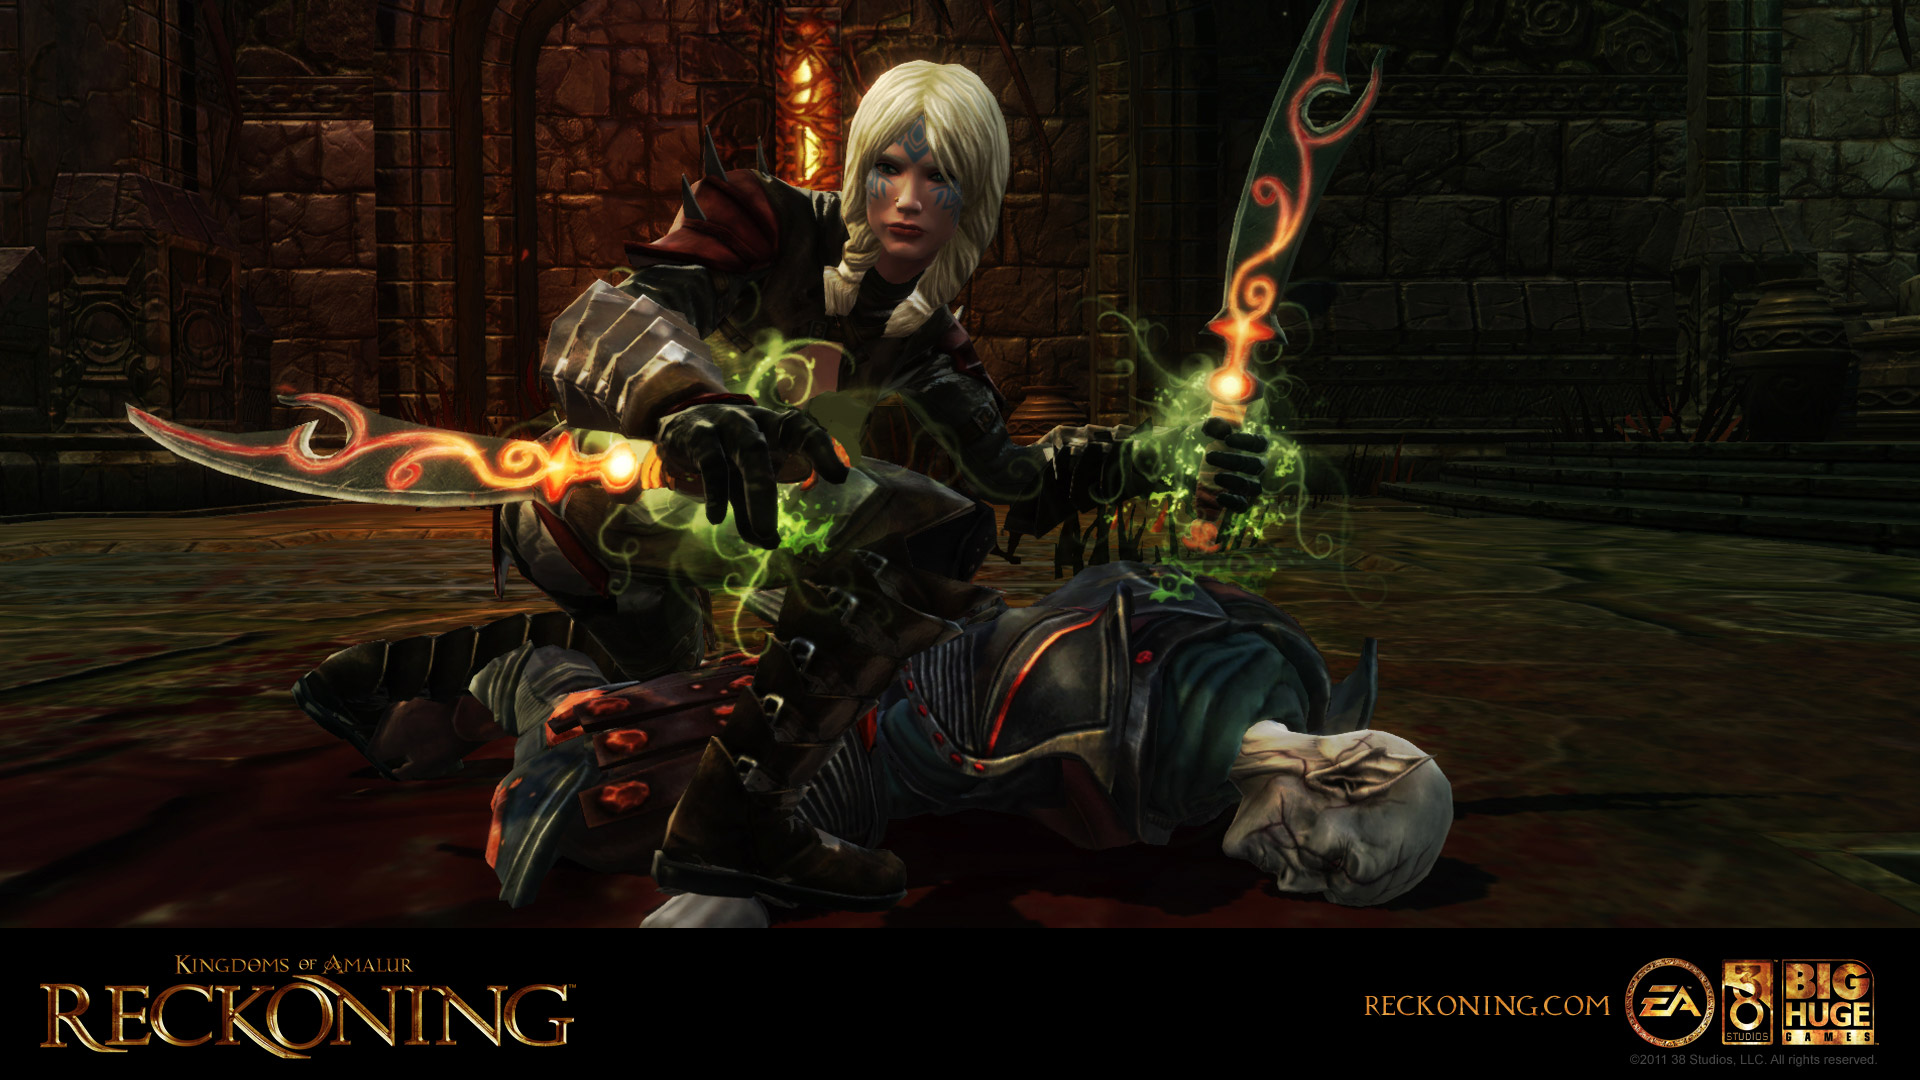 Free Kingdoms of Amalur: Reckoning Wallpaper in 1920x1080